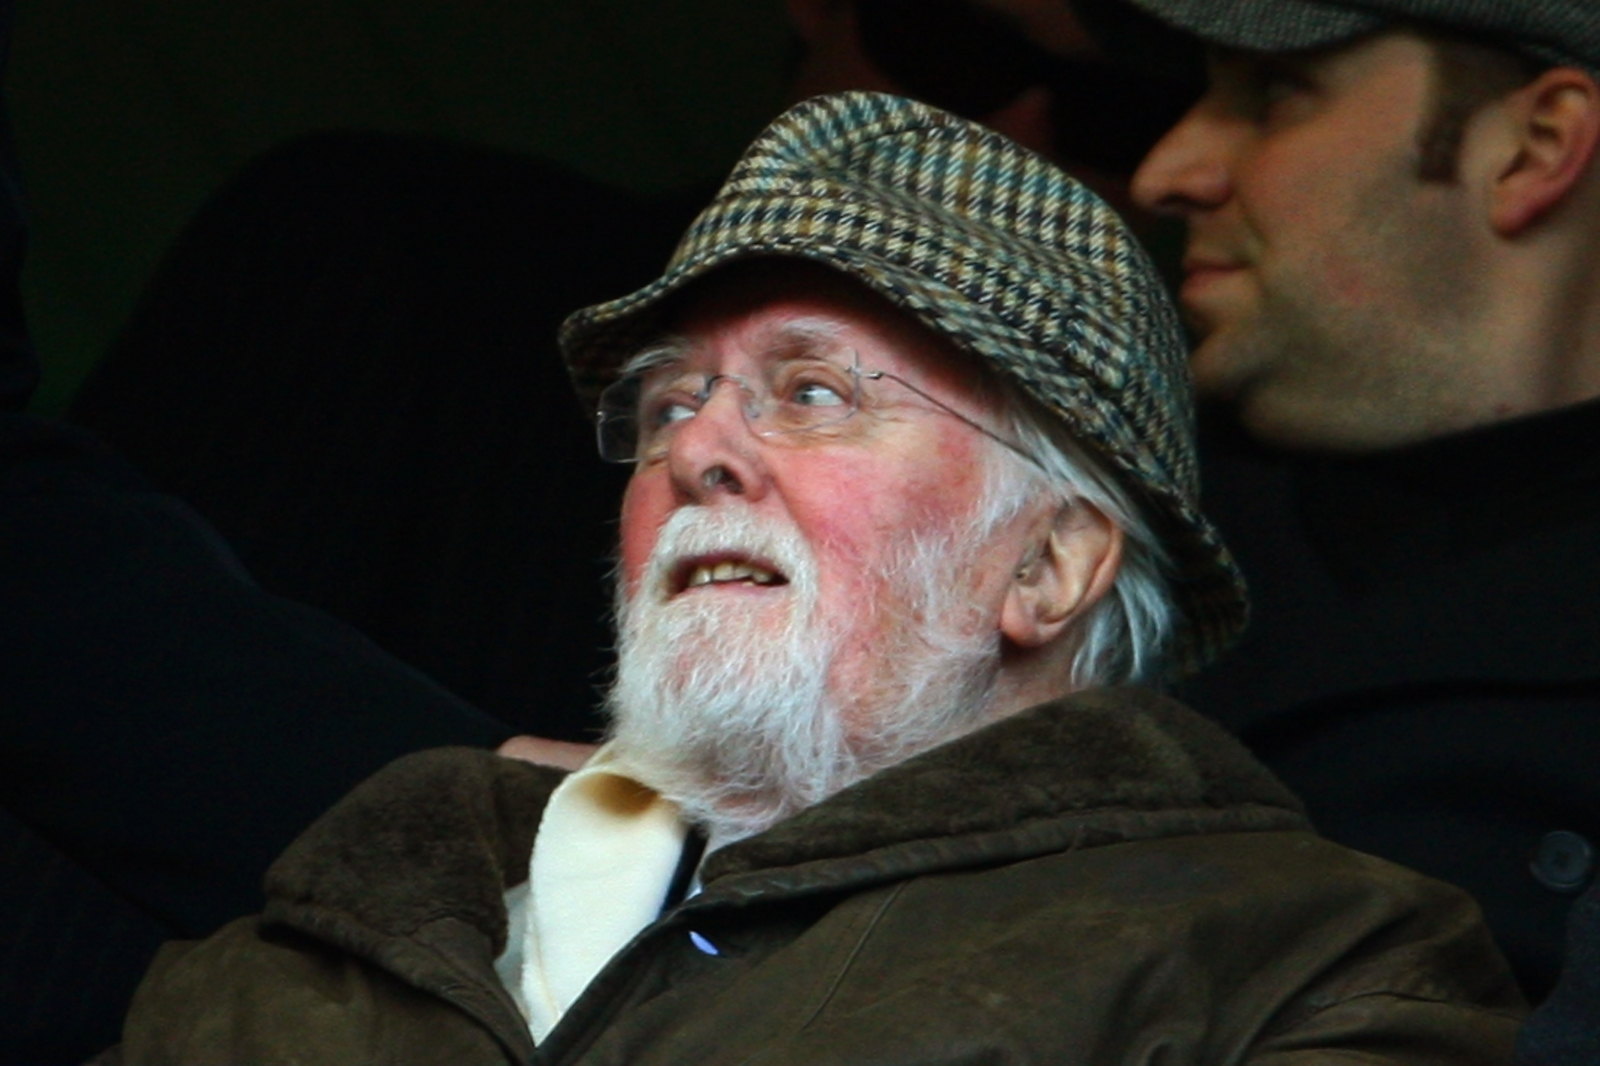 Lord Richard Attenborough has died at the age of 90.